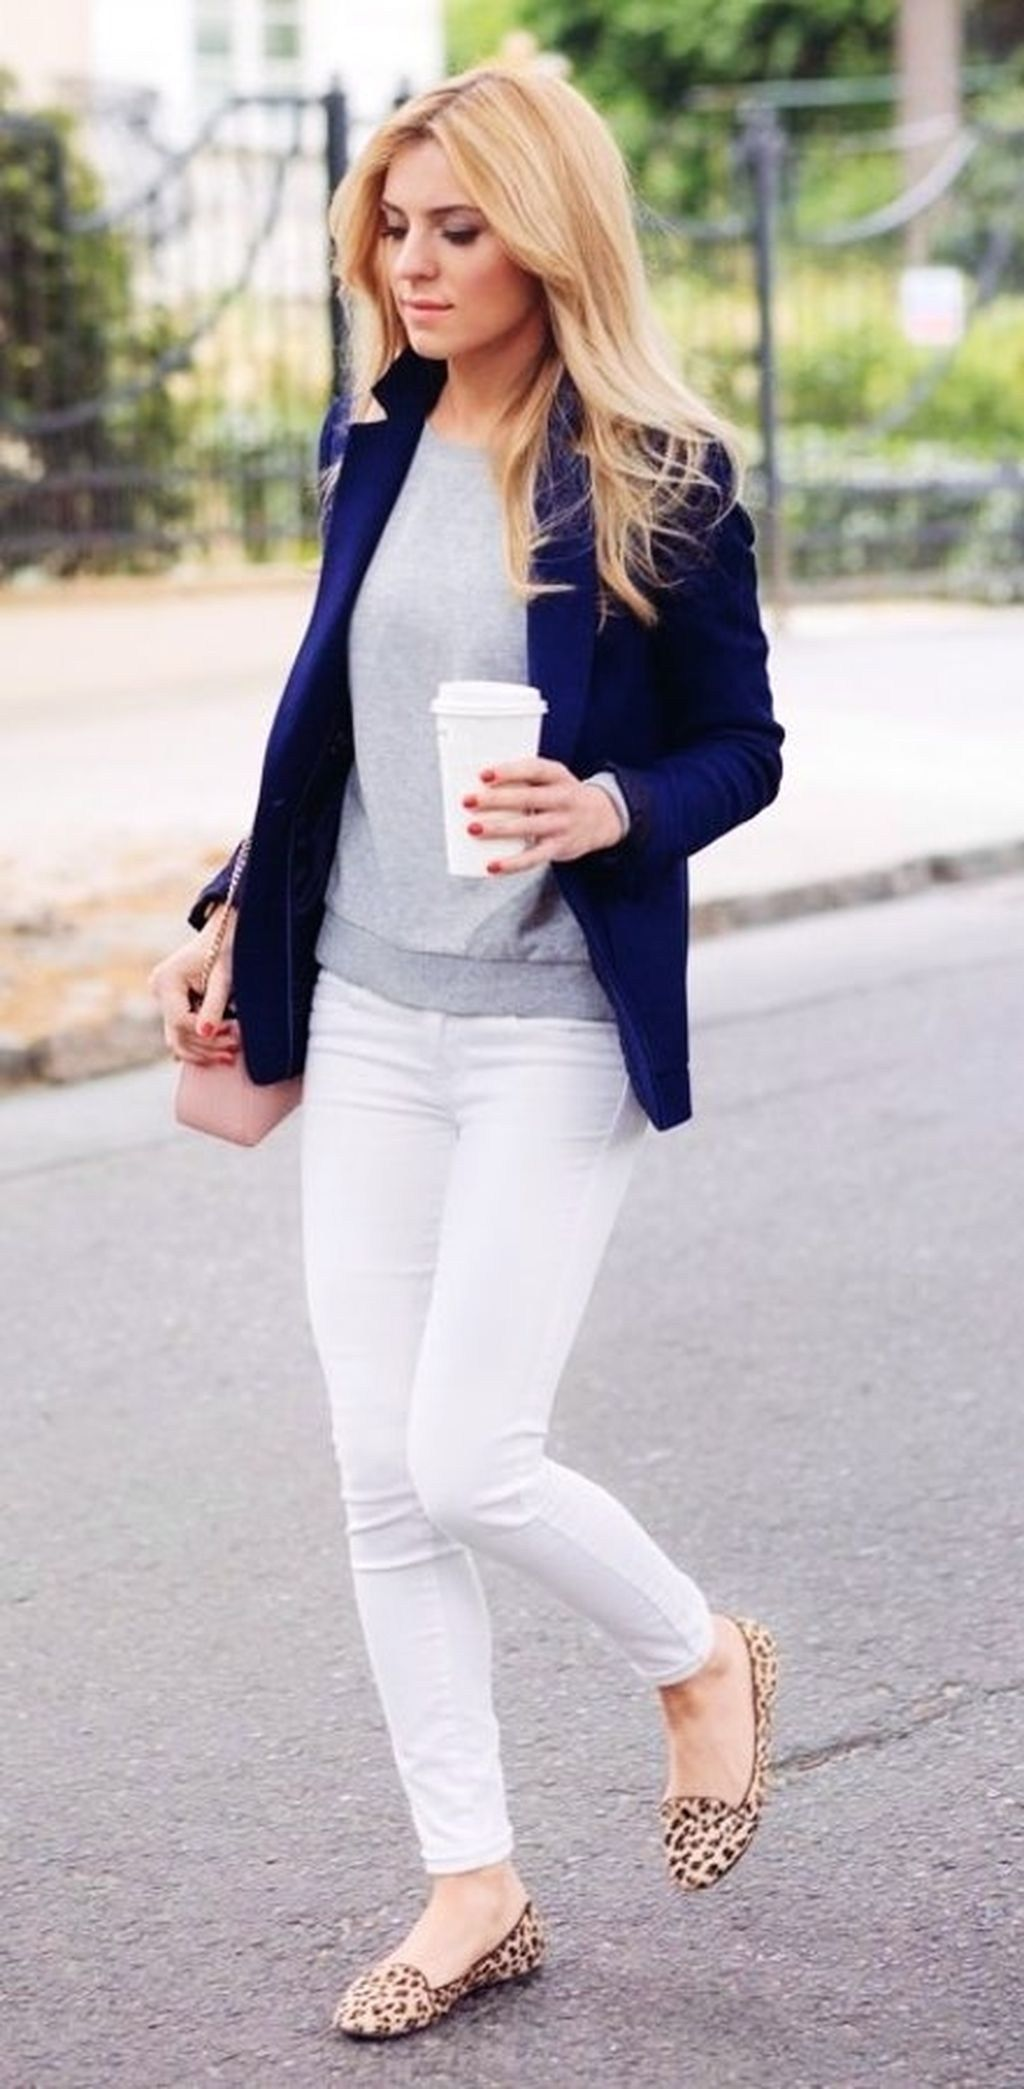 33f417389512 Amazing Winter White Skinny Jeans Outfits Ideas 10